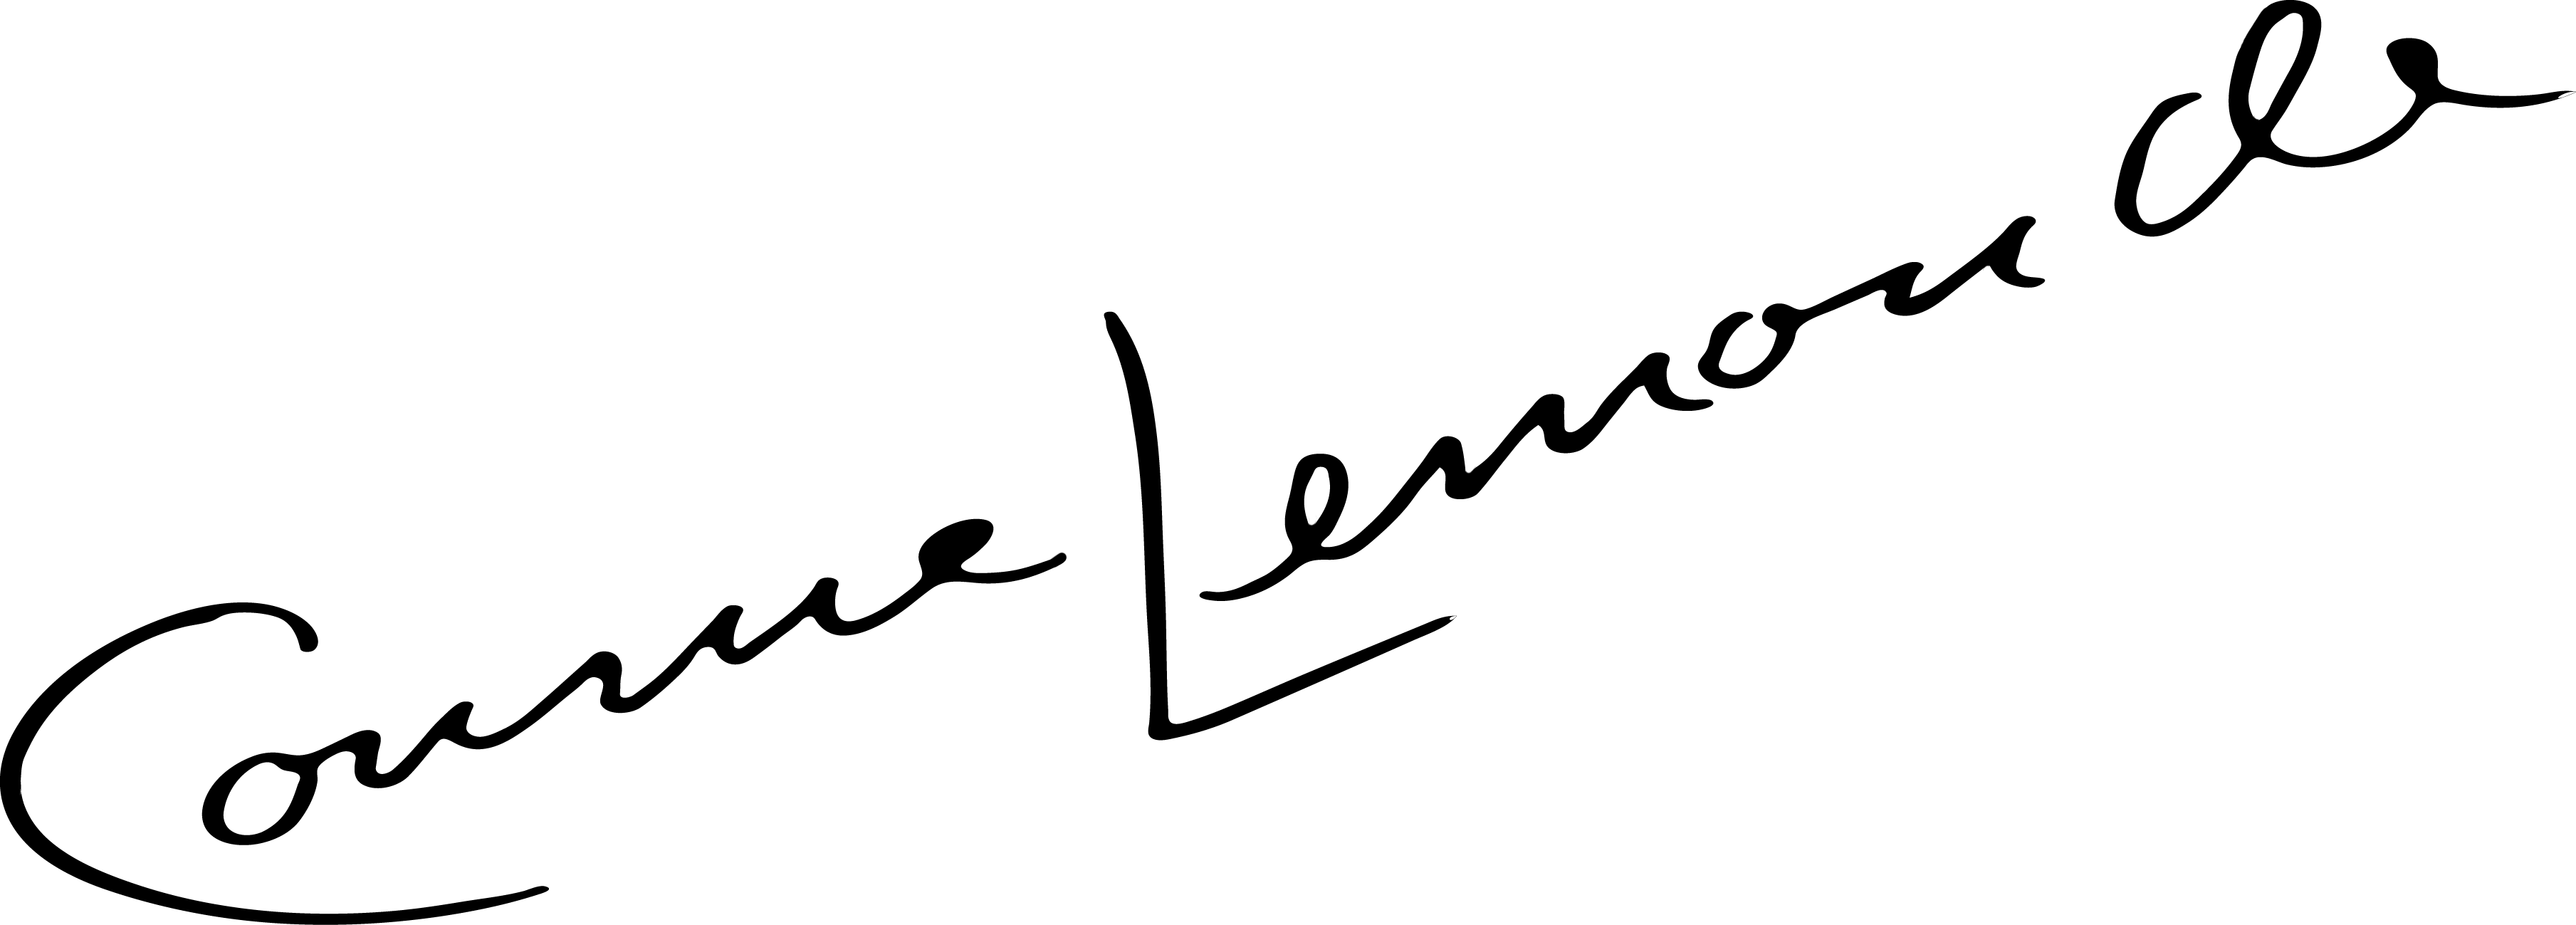 Connie Lemonde's Signature